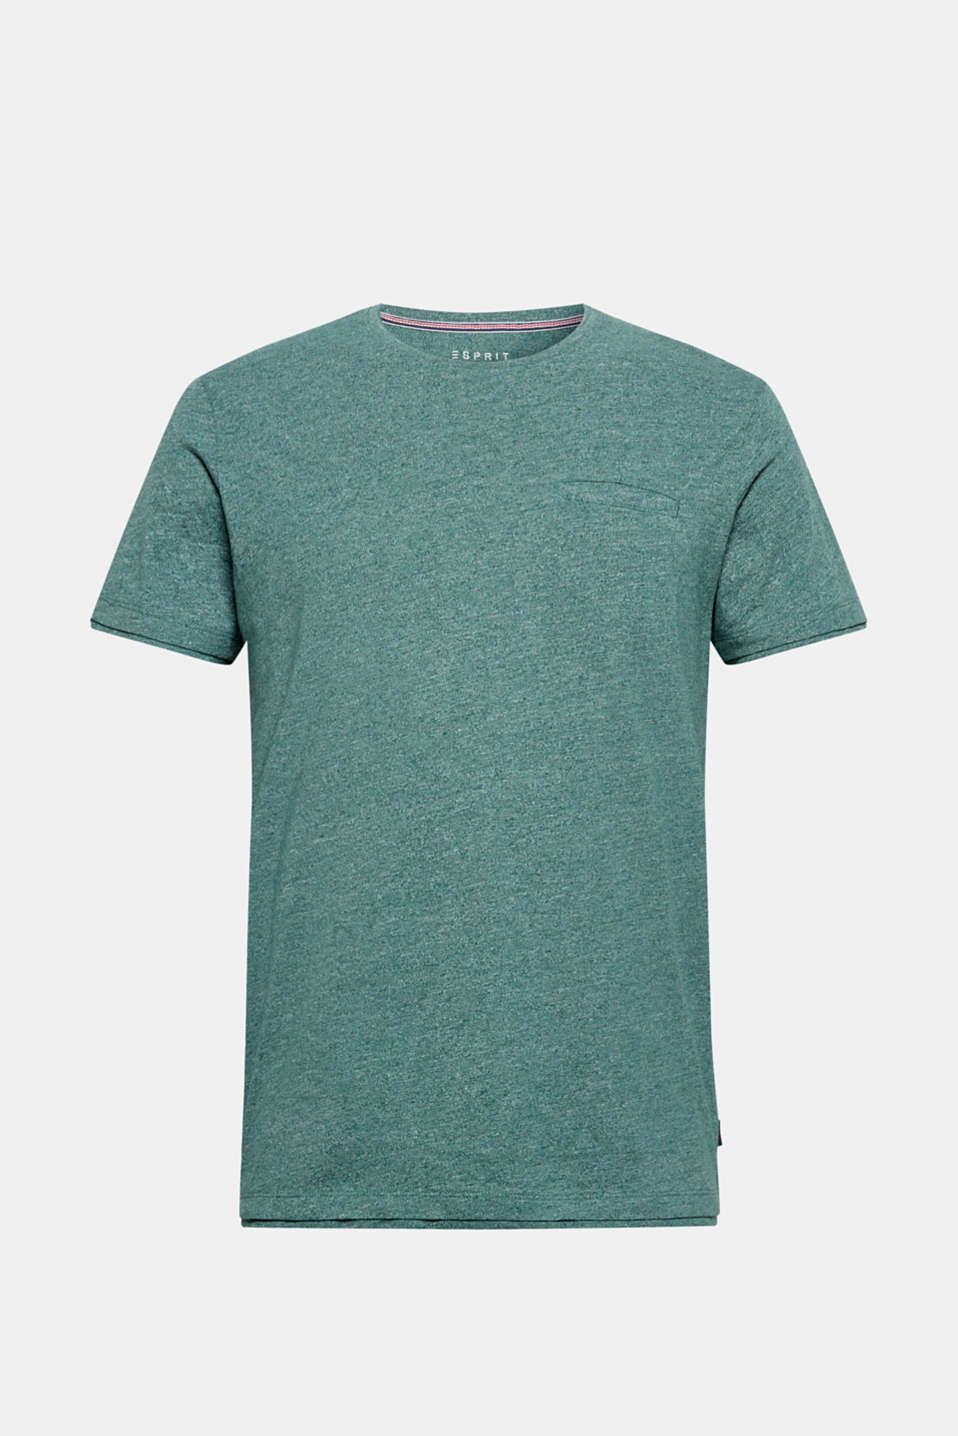 Jersey T-shirt in blended cotton, DUSTY GREEN, detail image number 6